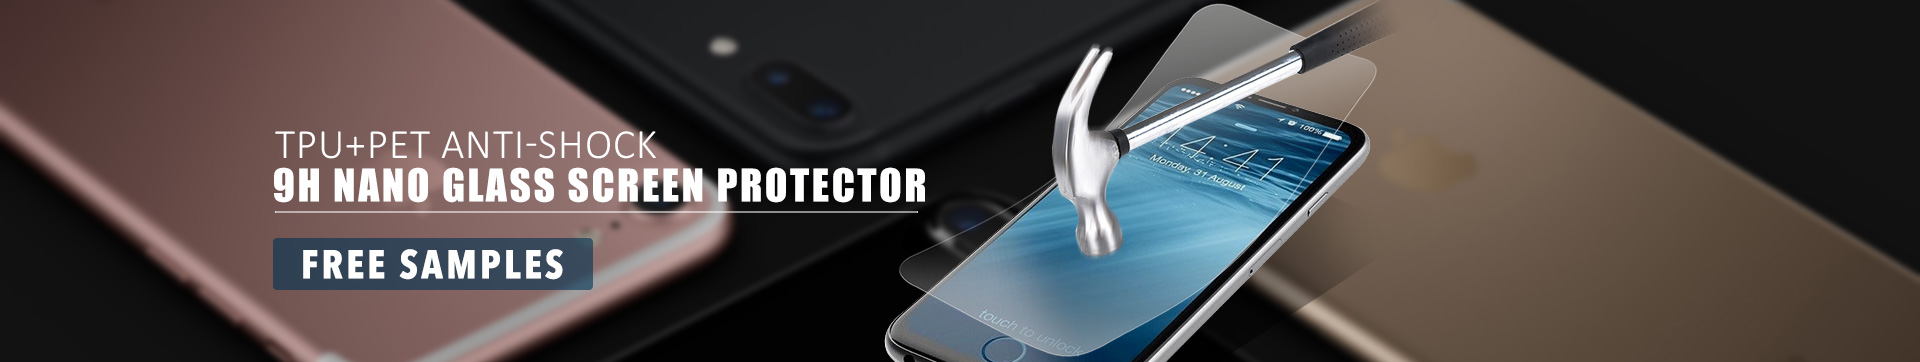 Nano Glass Screen Protector